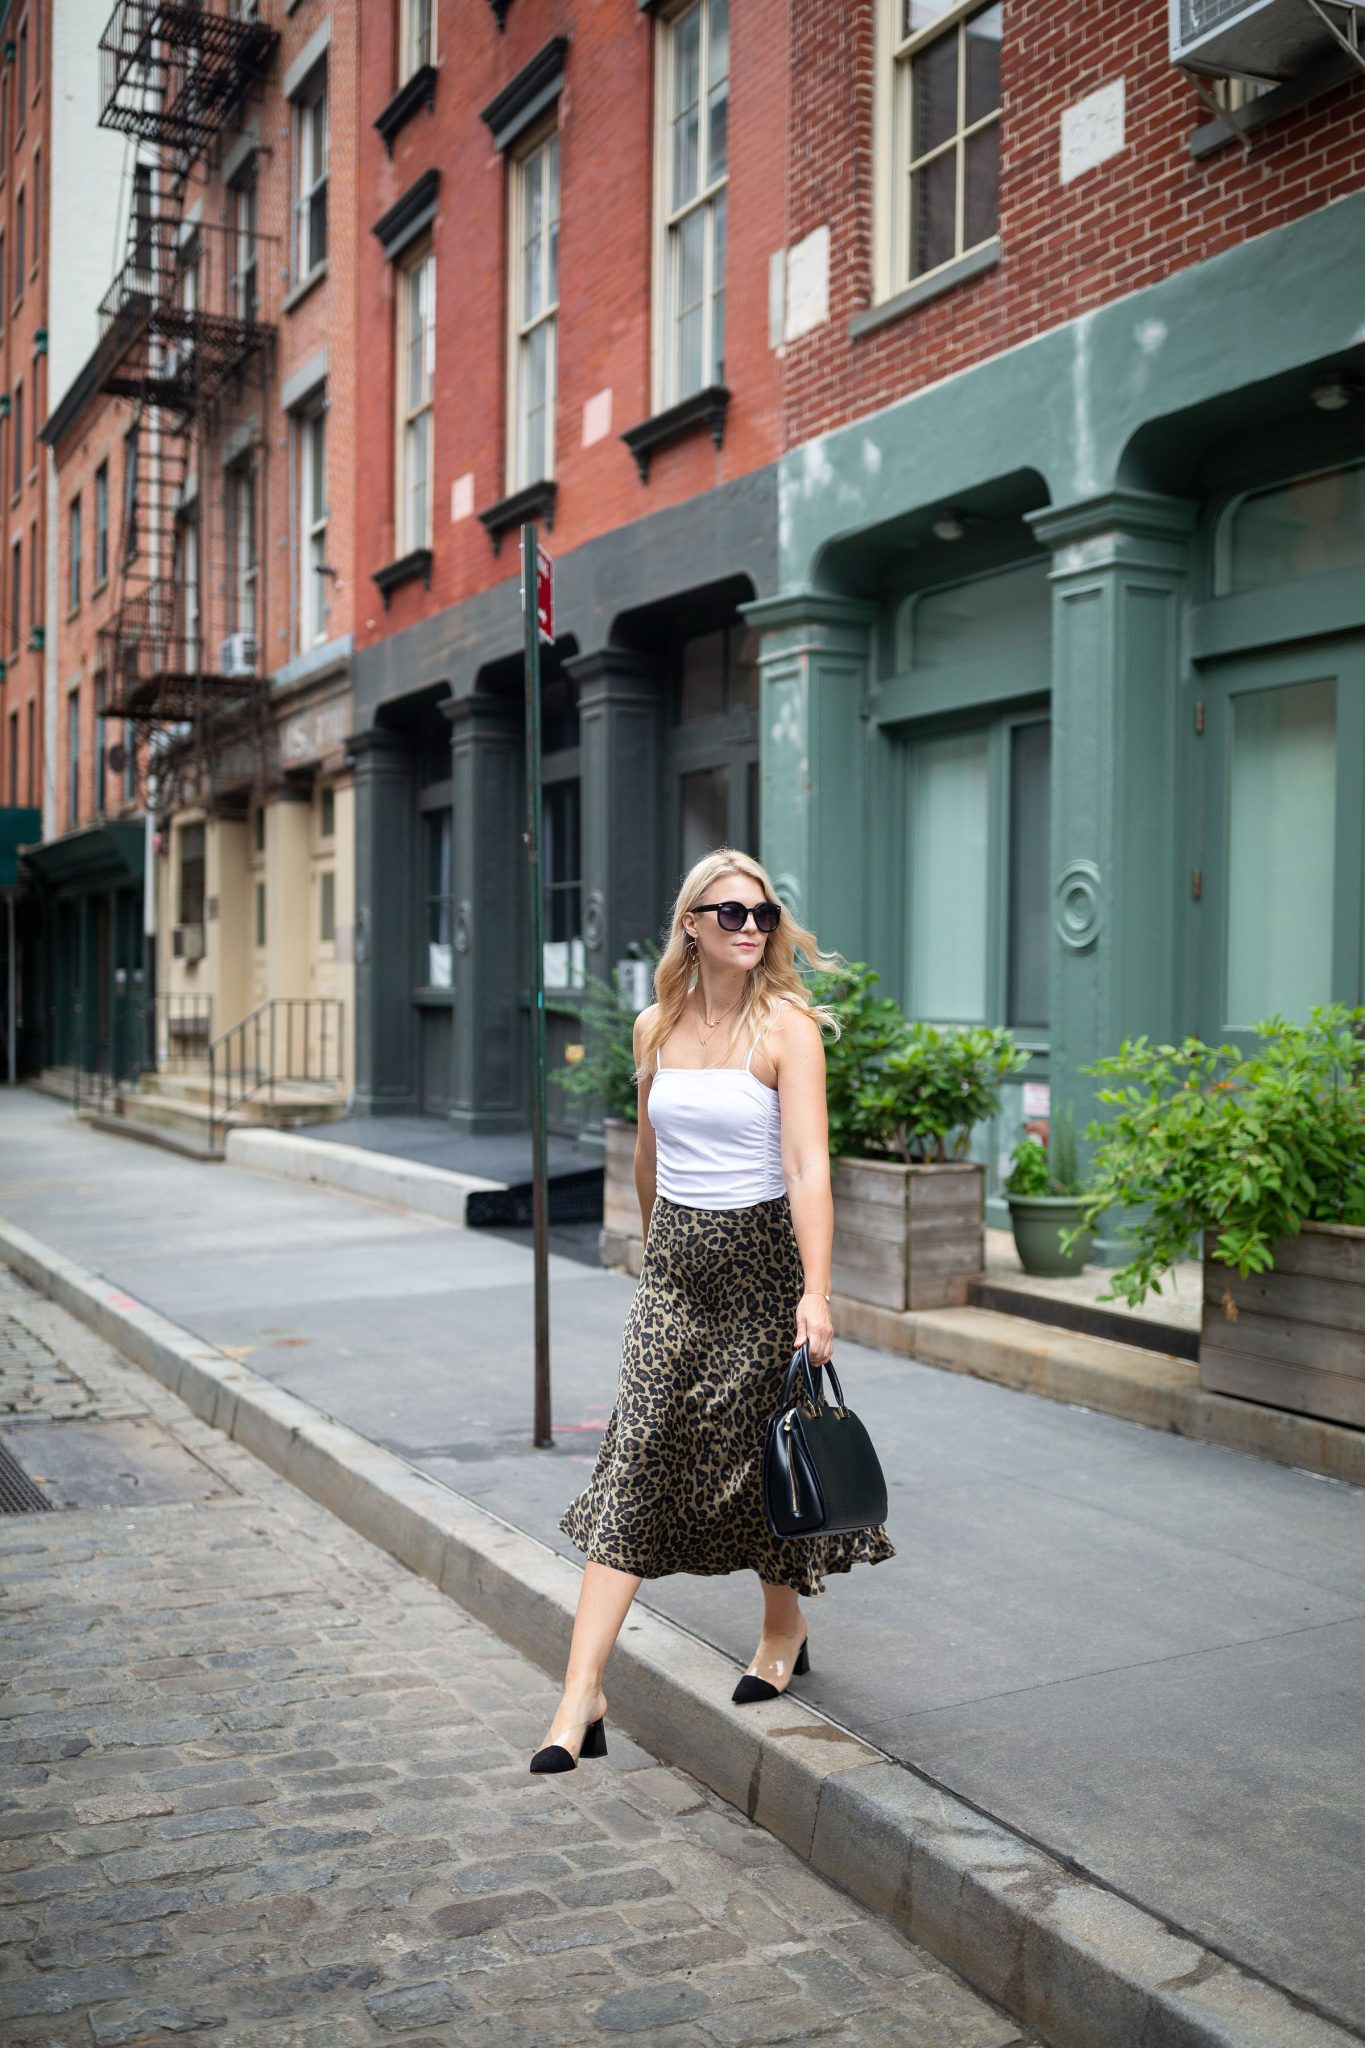 Leopard Skirt by popular Seattle tall fashion blog, Whit Wanders: image of a woman stepping off the curb of a cobble stone street in front of a green building and wearing a Free People Bodysuit, Zara Leopard Skirt, Zara Black Heels, and holding Louis Vuitton Tote.